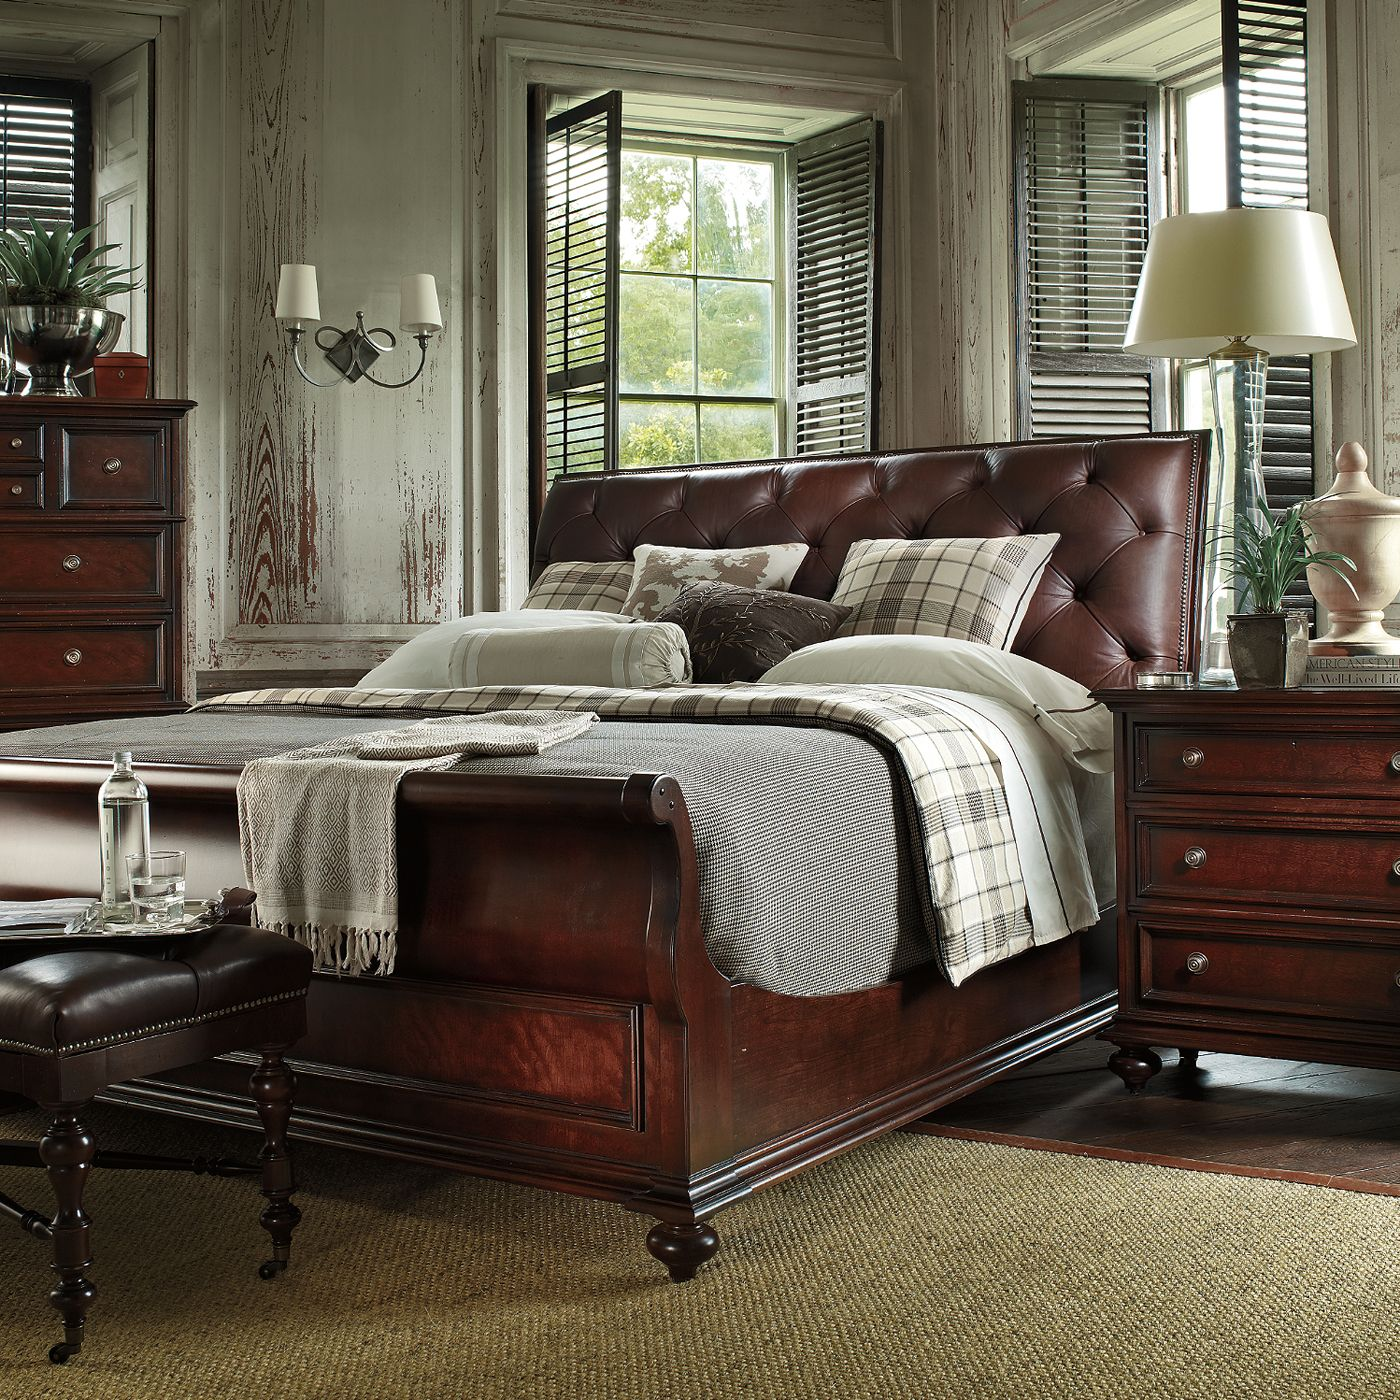 terrific leather bedroom furniture design | Stanley Furniture 933-13-3 City Club Saville Leather ...